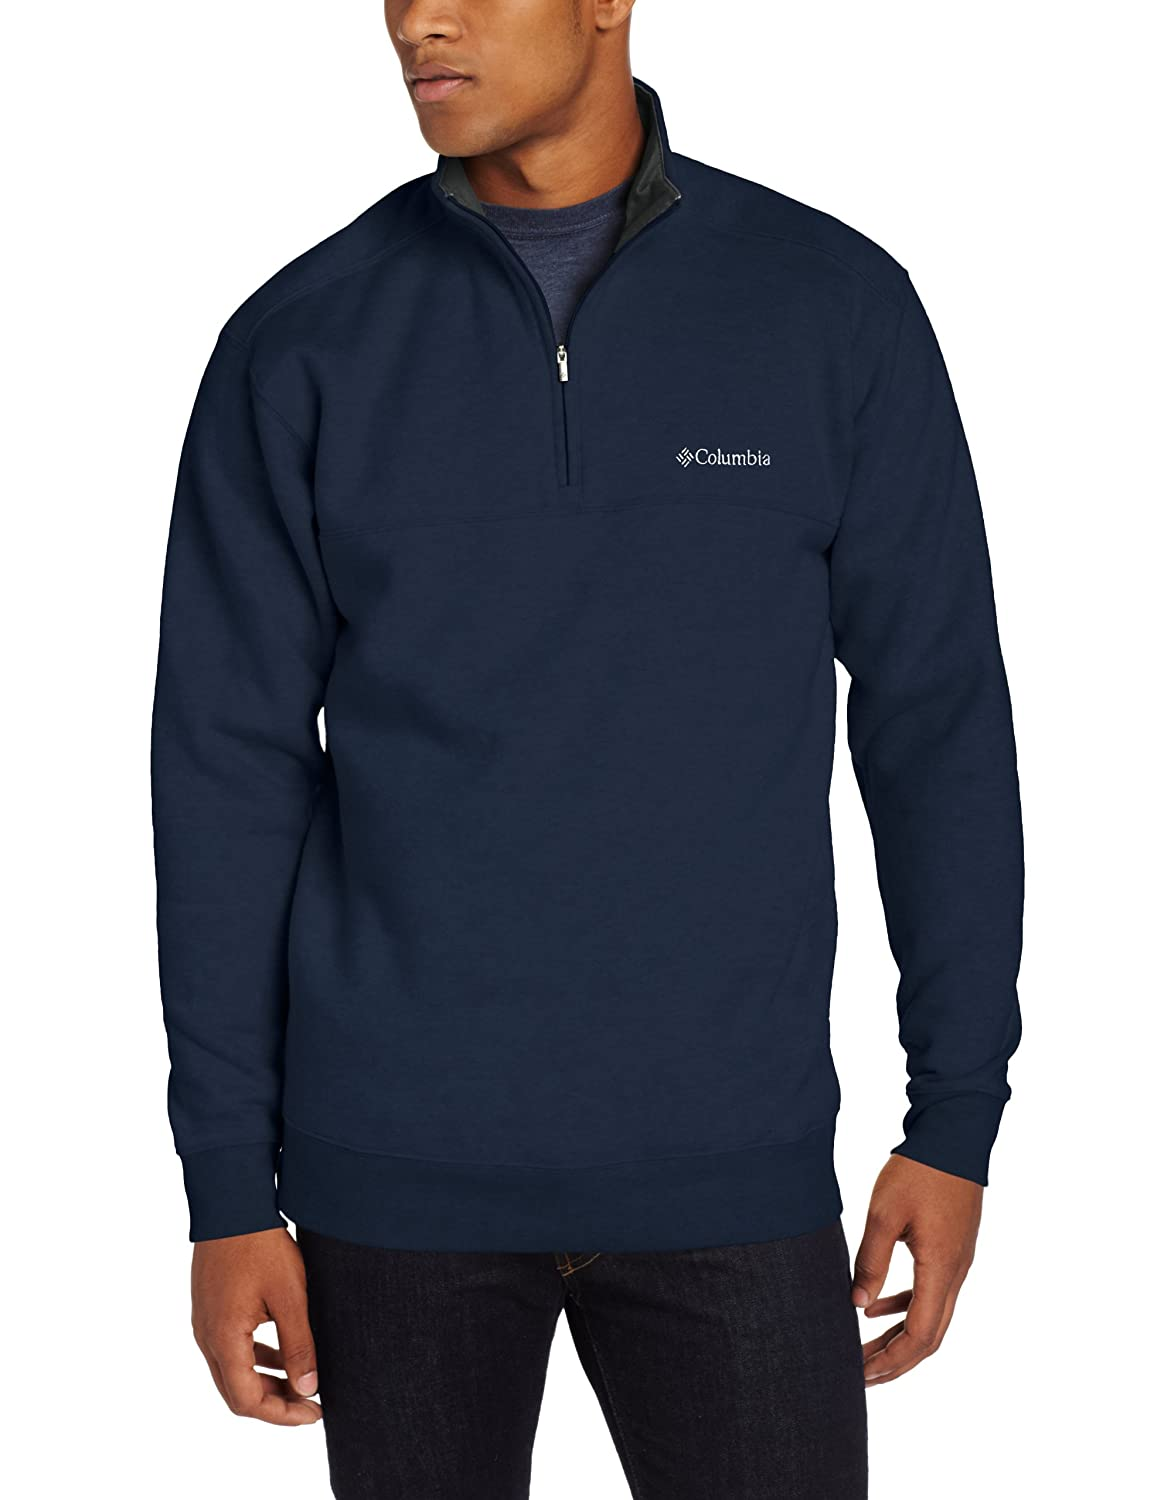 Columbia Men's Big Hart Mountain II Half Zip Columbia Men's Outerwear AS6771